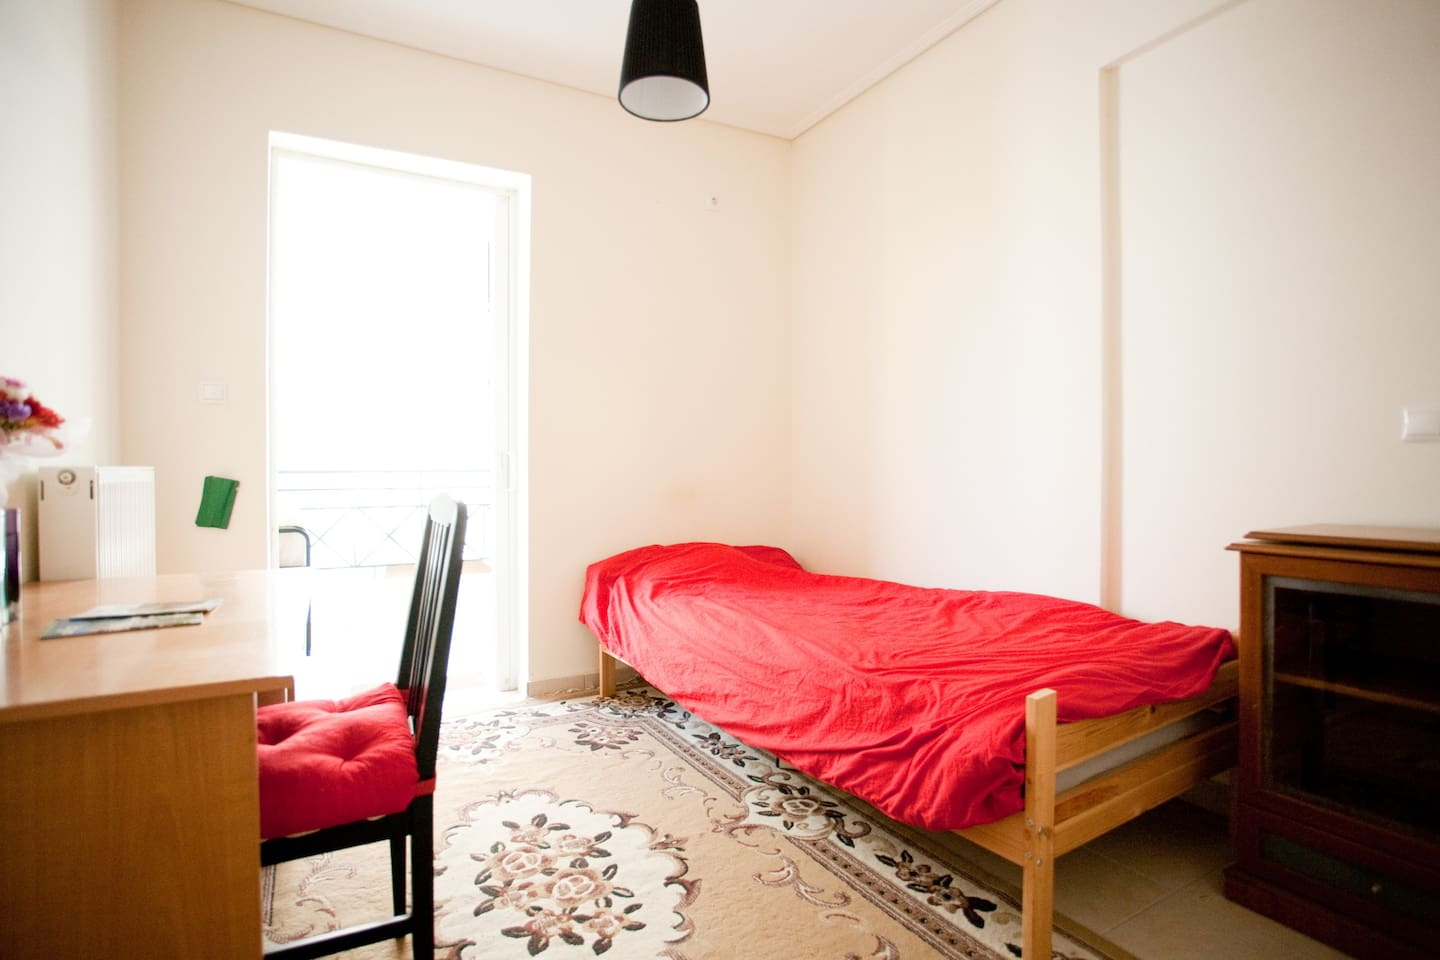 SingleBed Room at my new apartement